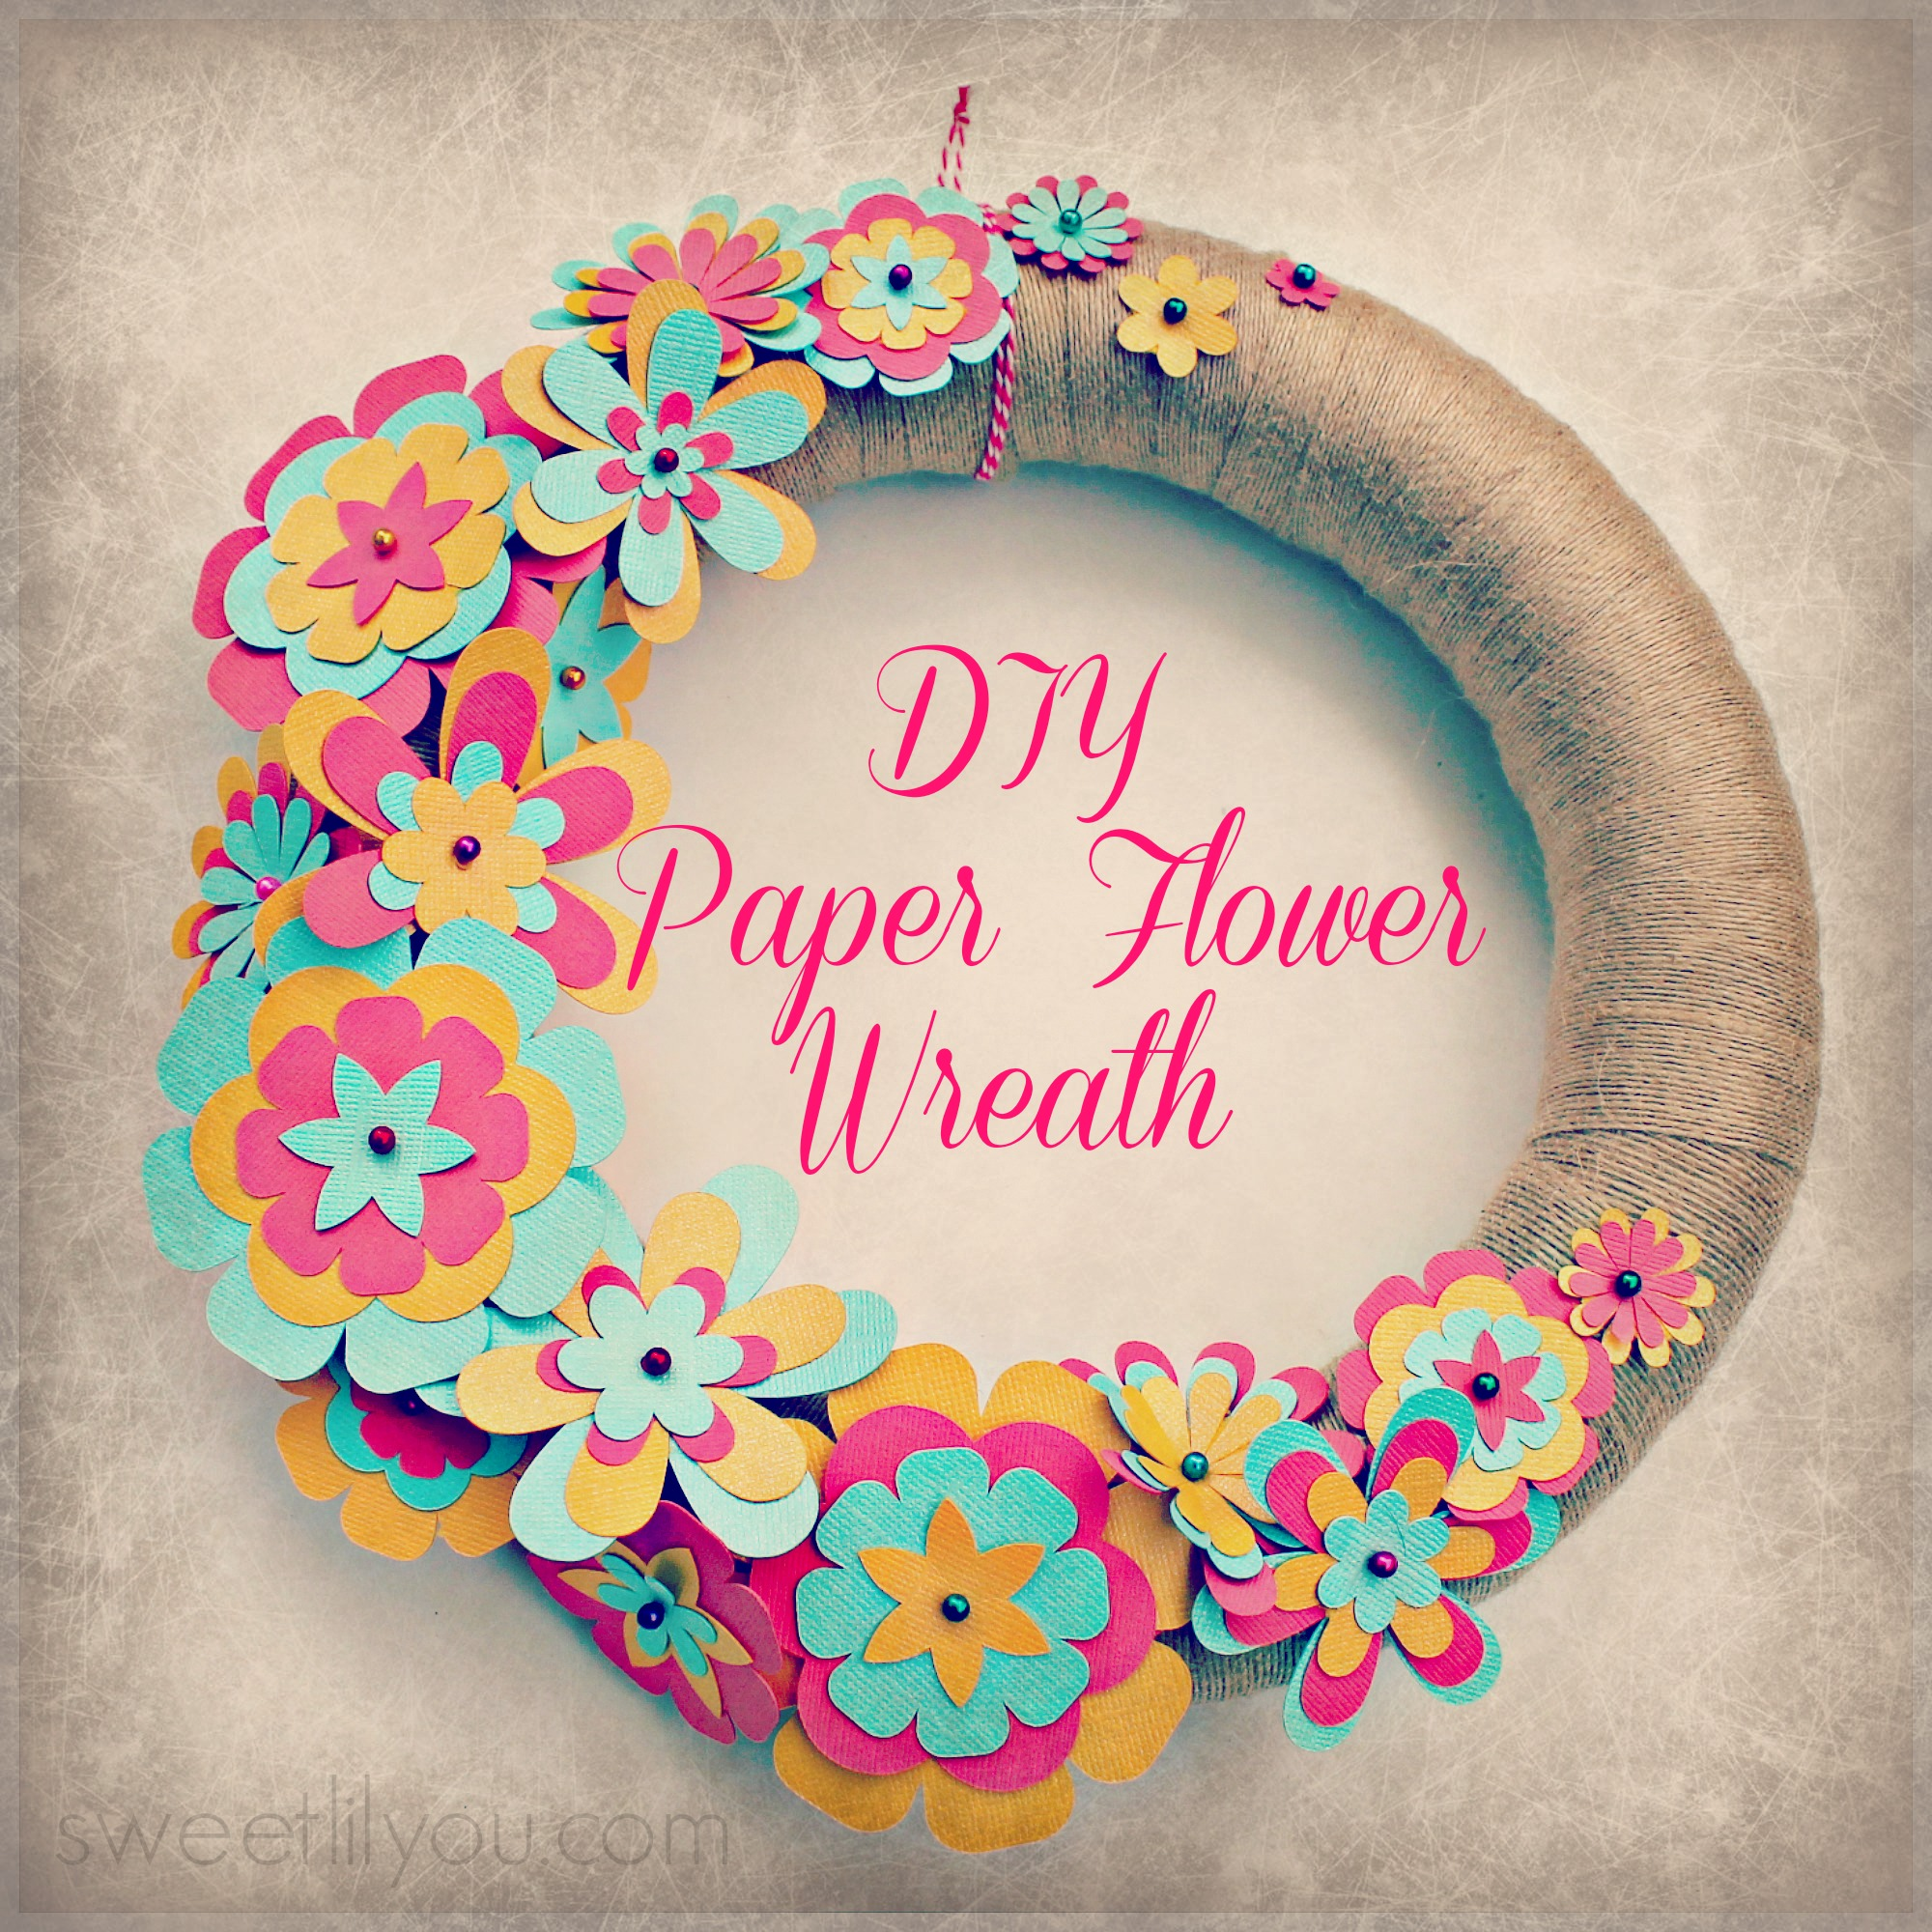 Easy DIY Paper Flower Wreath!